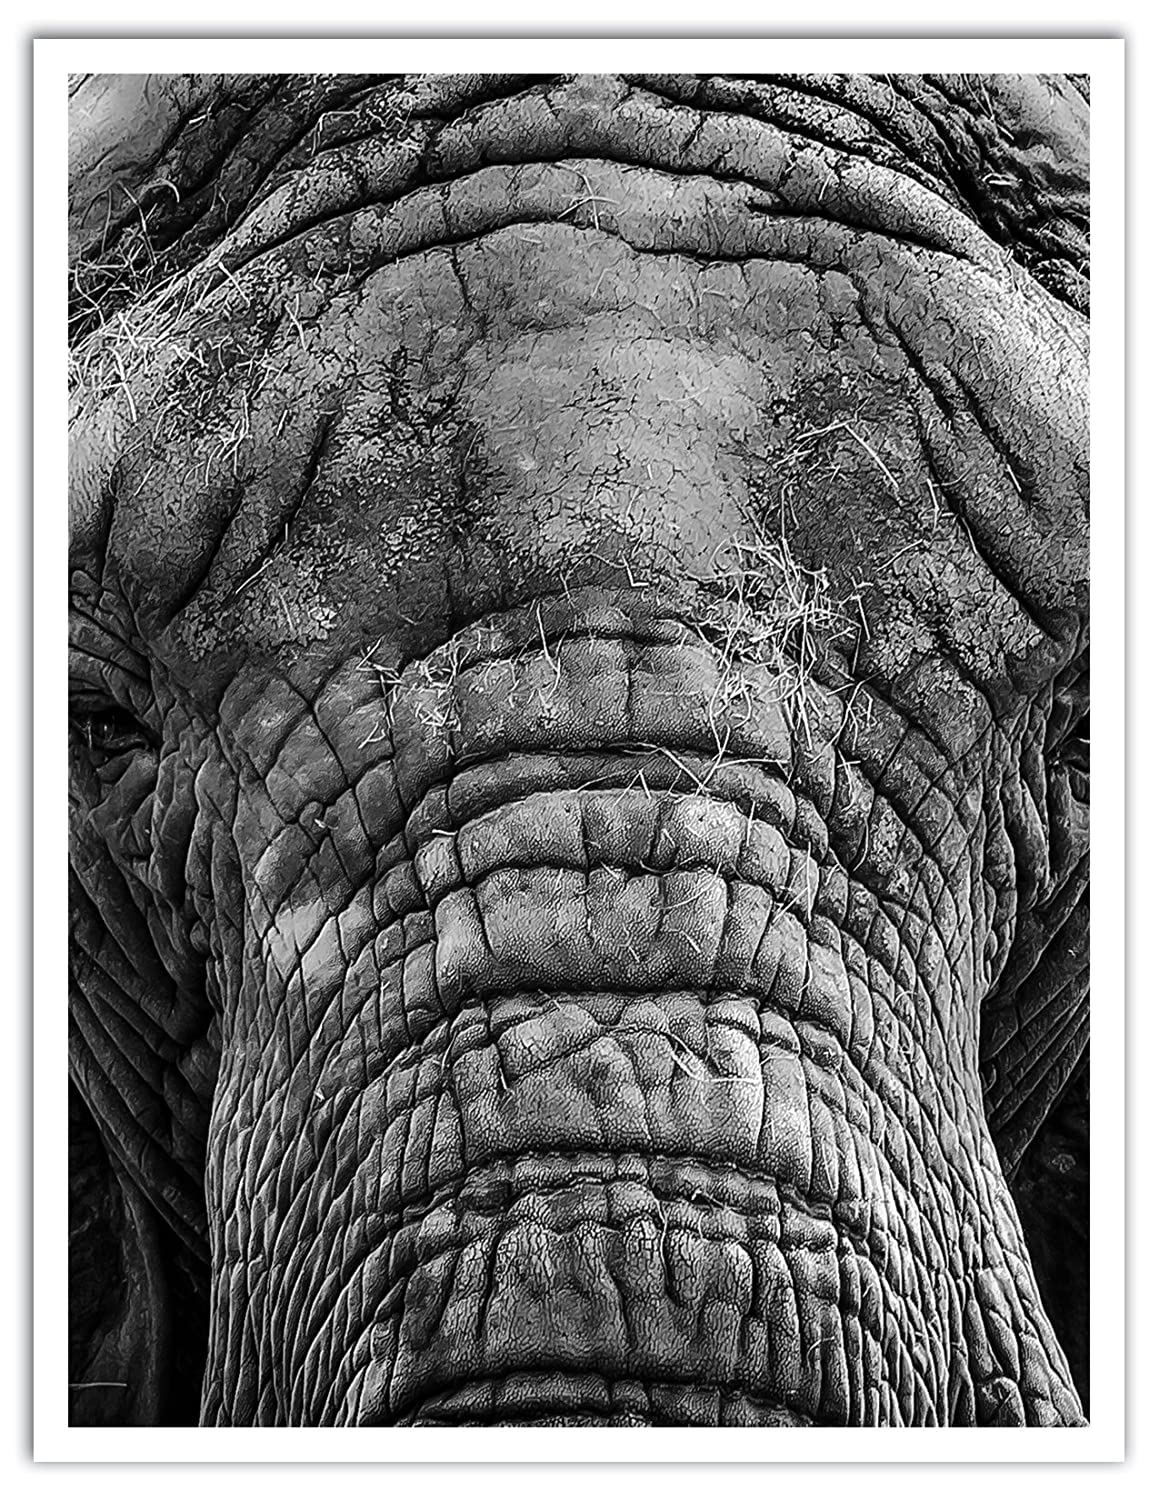 JP London POS1X50690 Jpl and Giovanni Casini Present 0|0 Wrinkle Trunk Grey Elephant Nature 25.75 by 19.75 Peel and Stick Fully Removable Wall Poster Mural